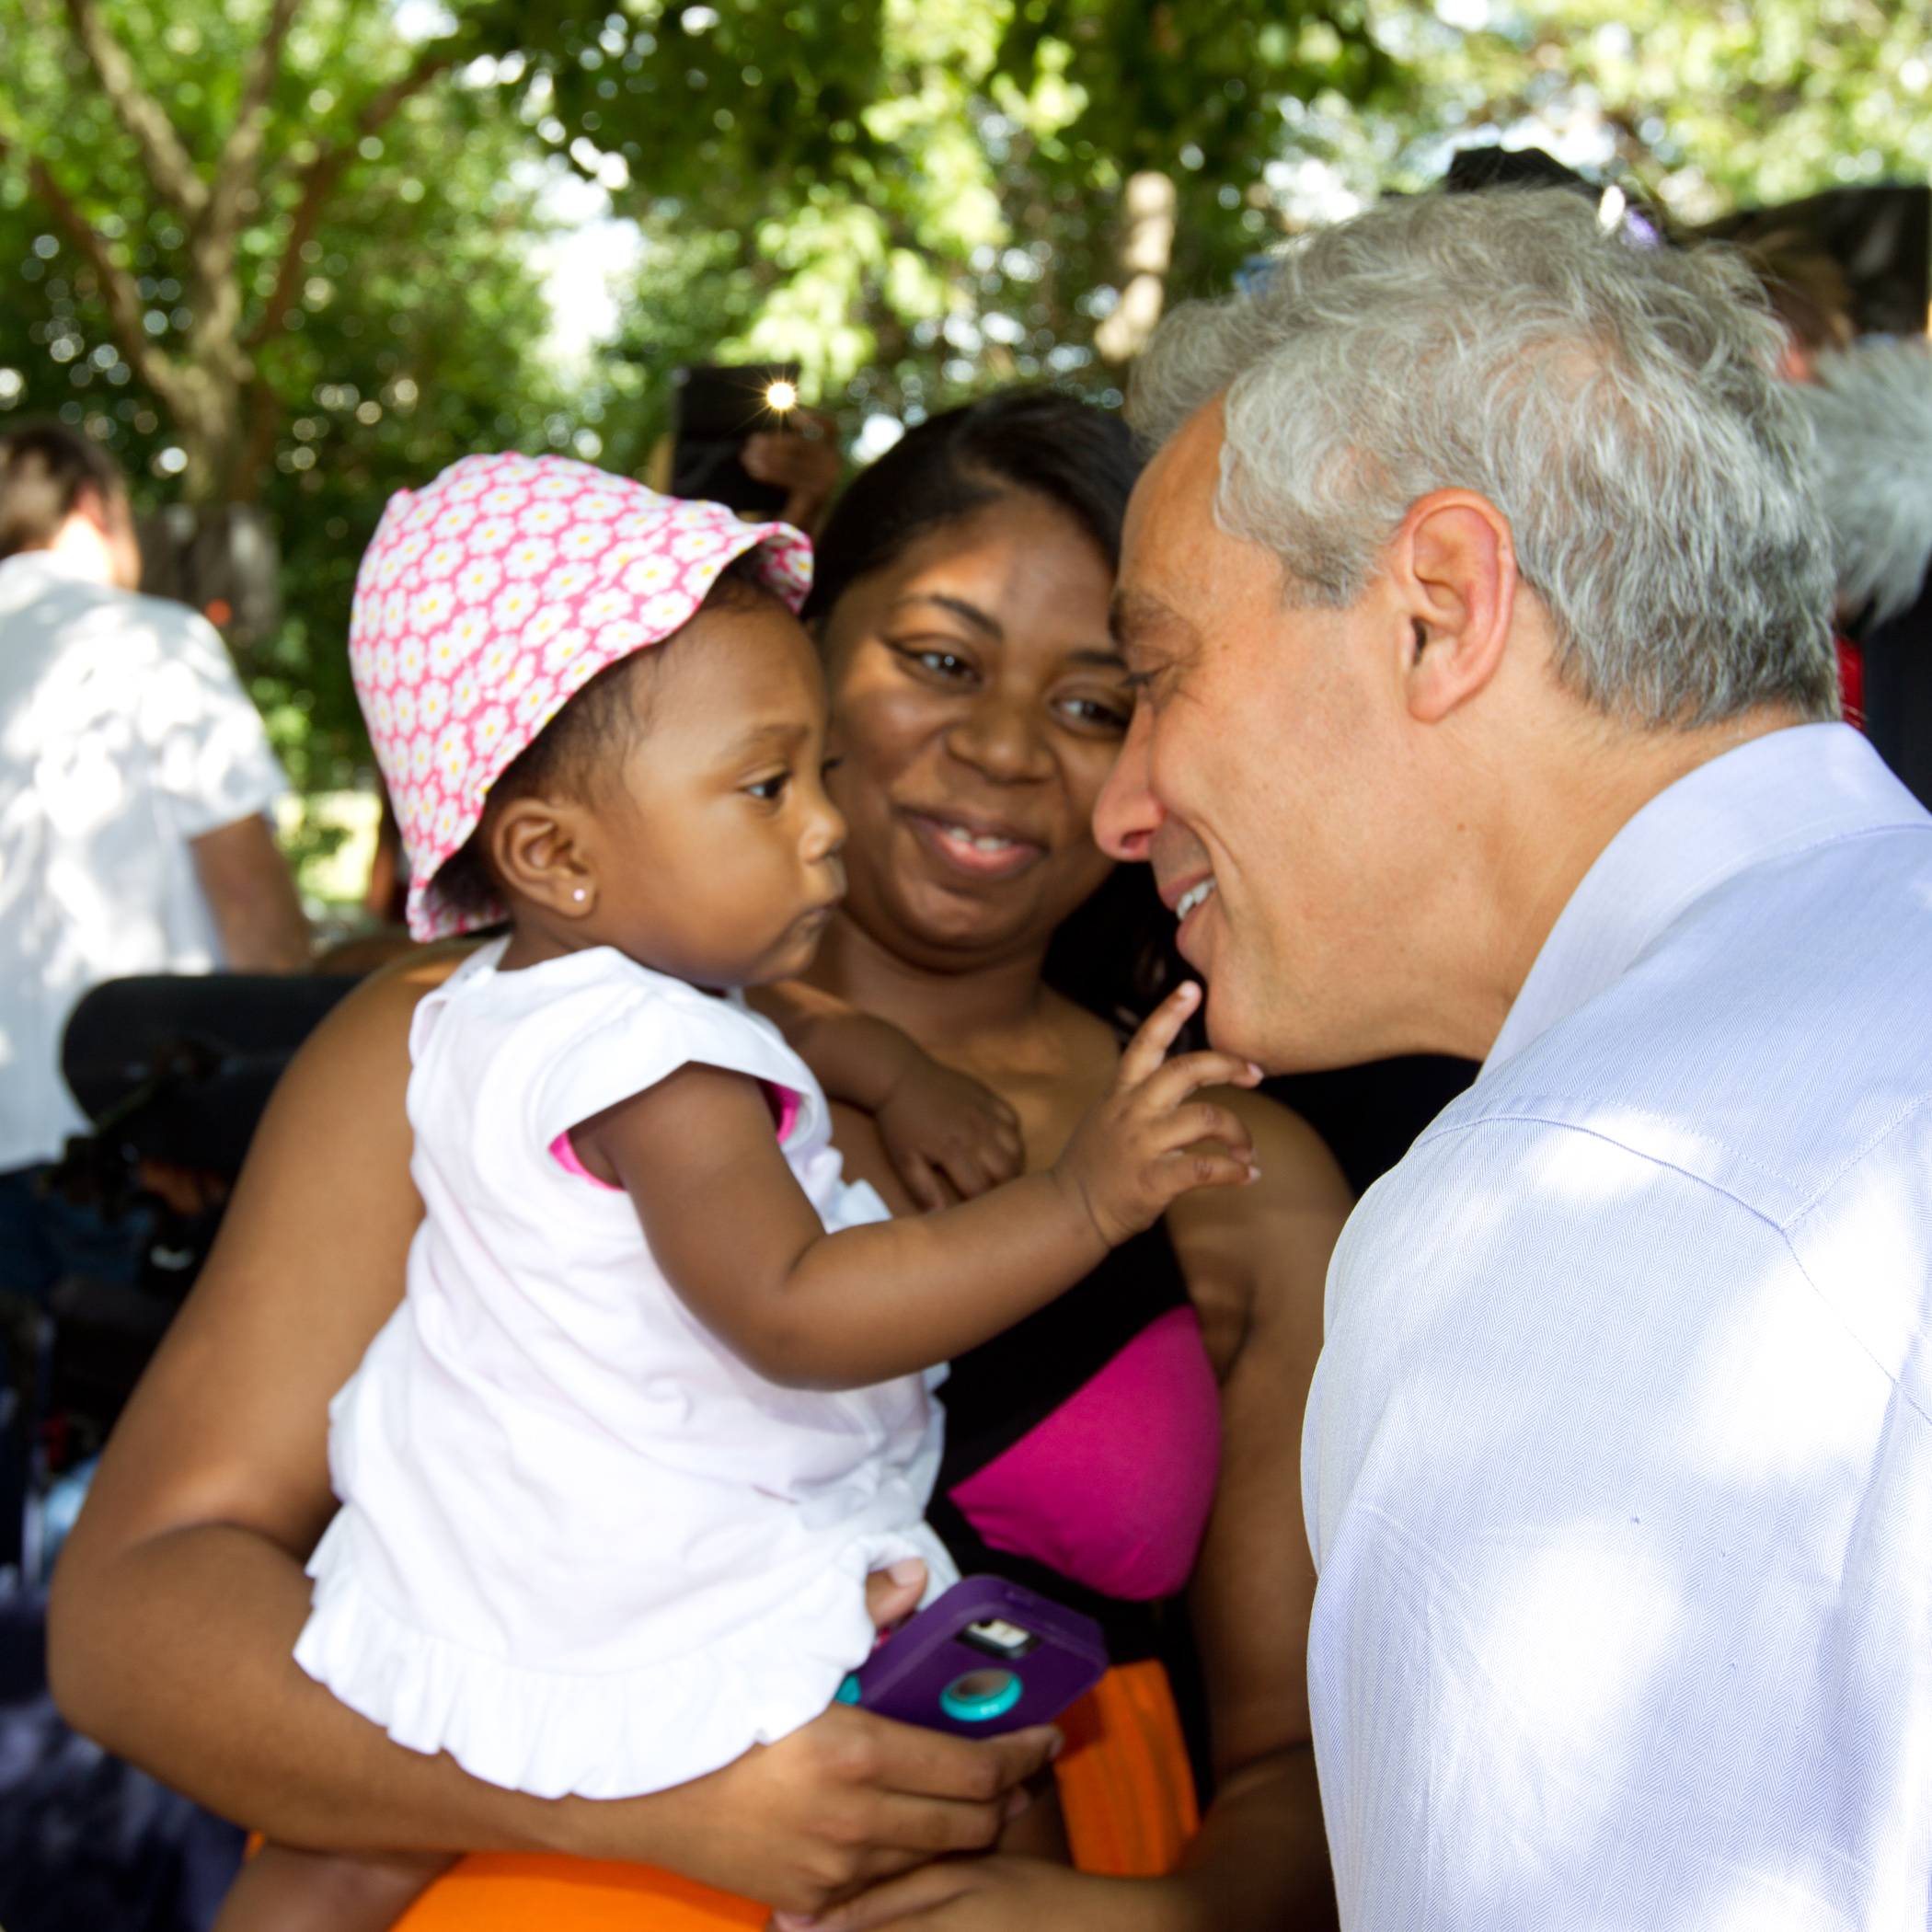 Mayor Emanuel joins Bronzeville community members as they cerebrate the opening of a new playground at Anderson Park.